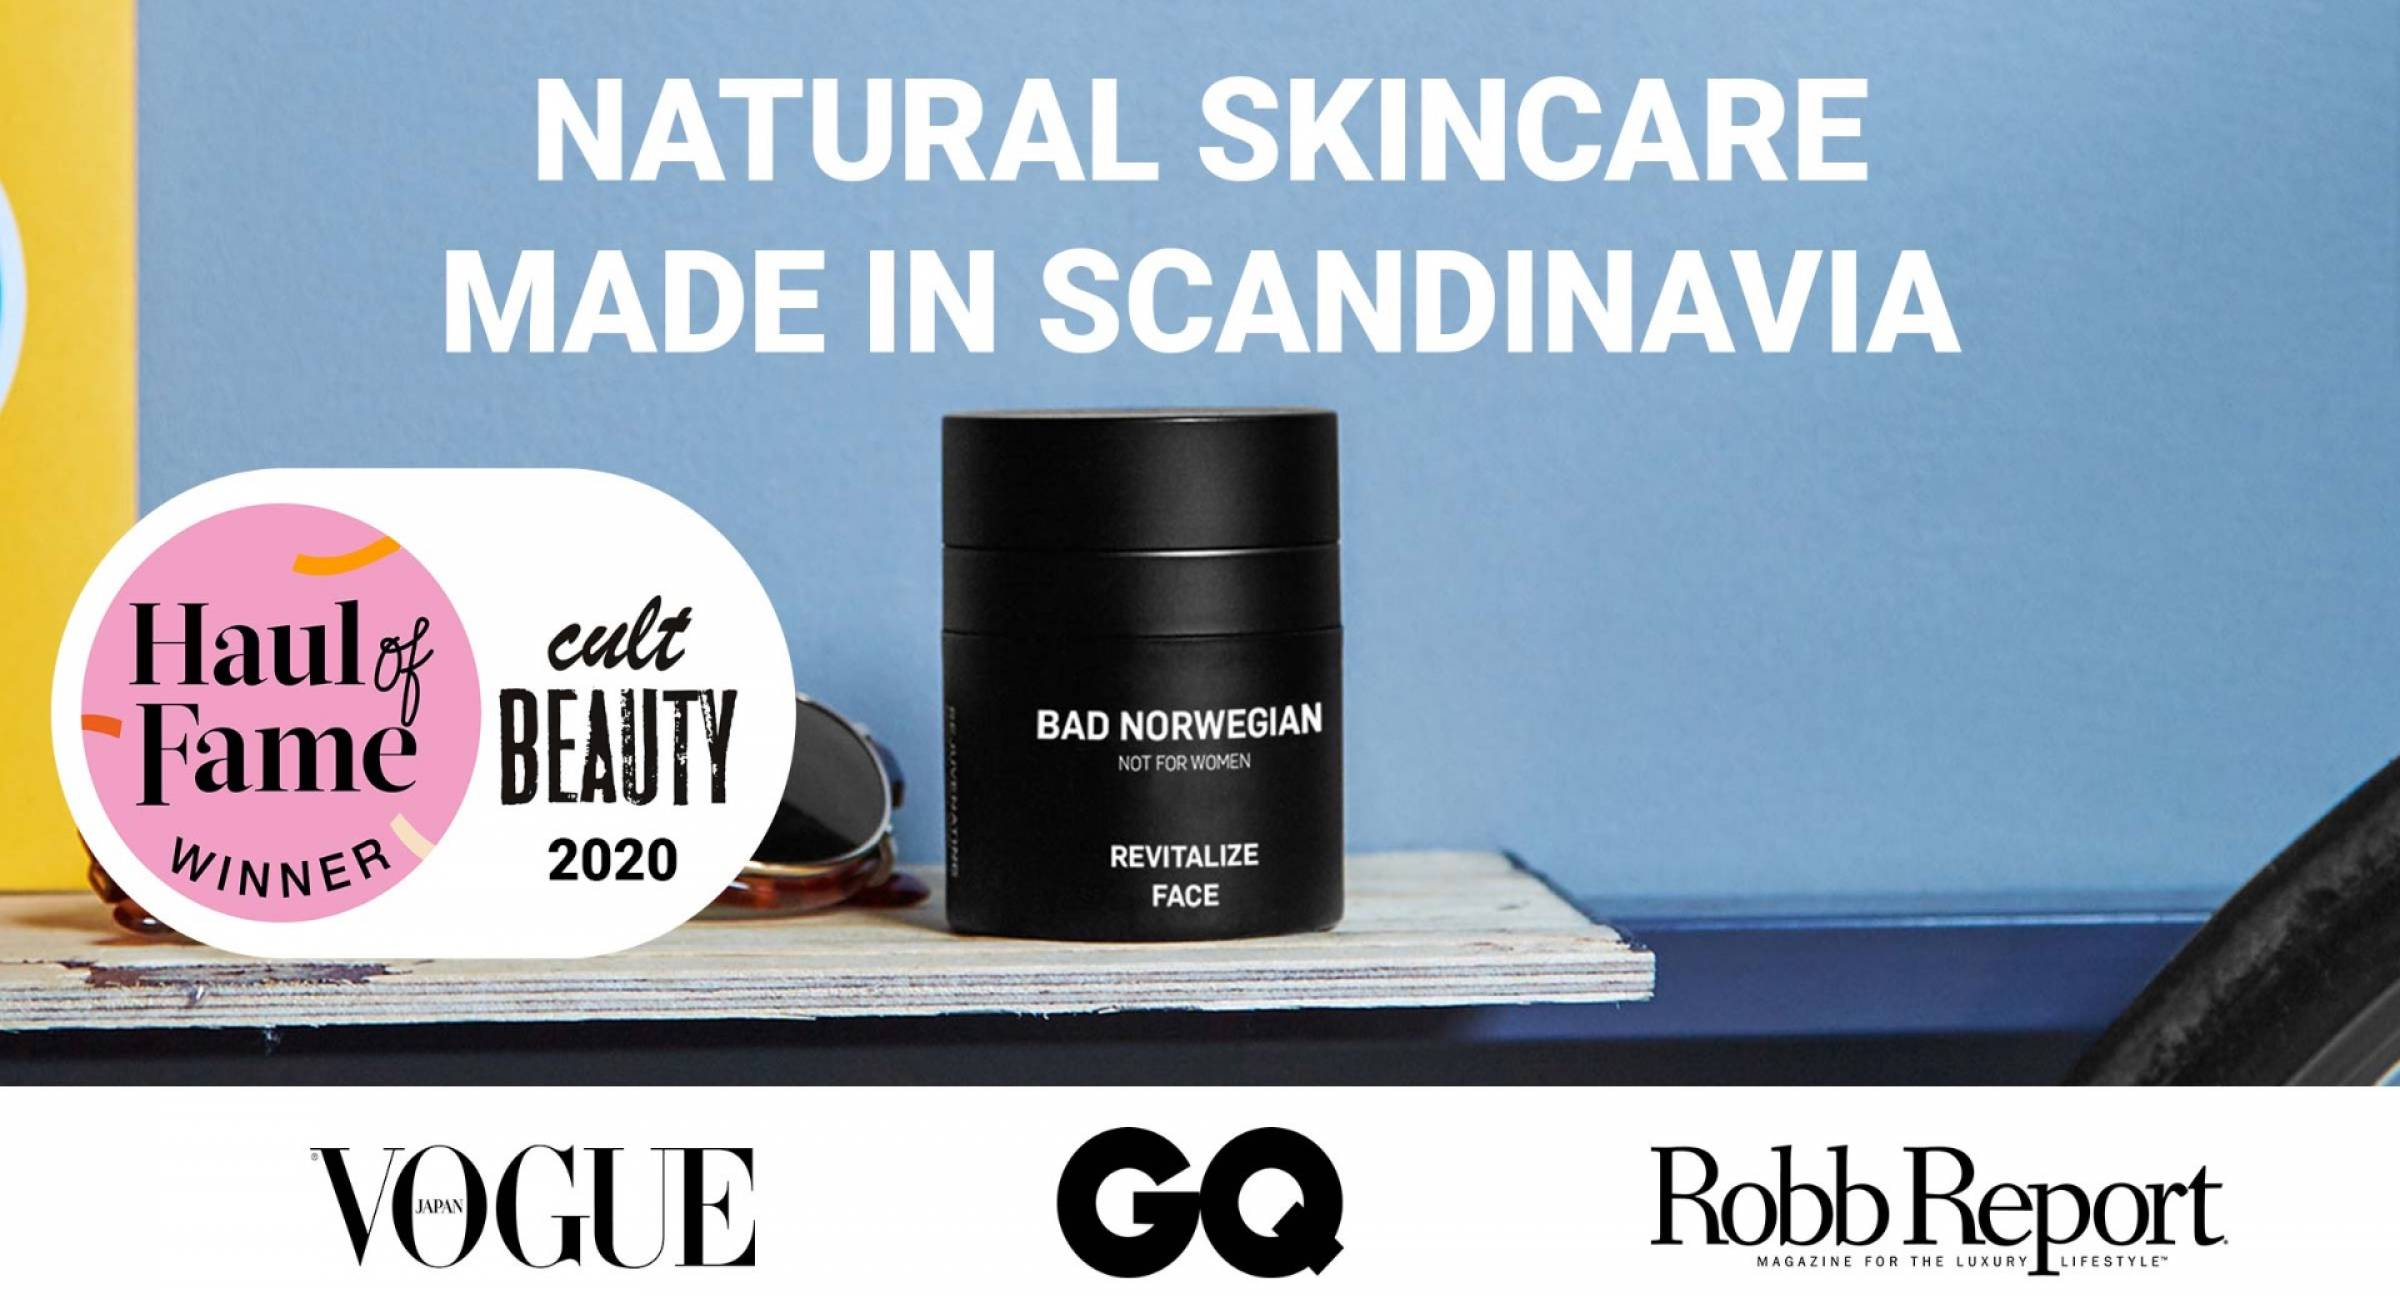 https://www.badnorwegian.com/revitalize-face.html